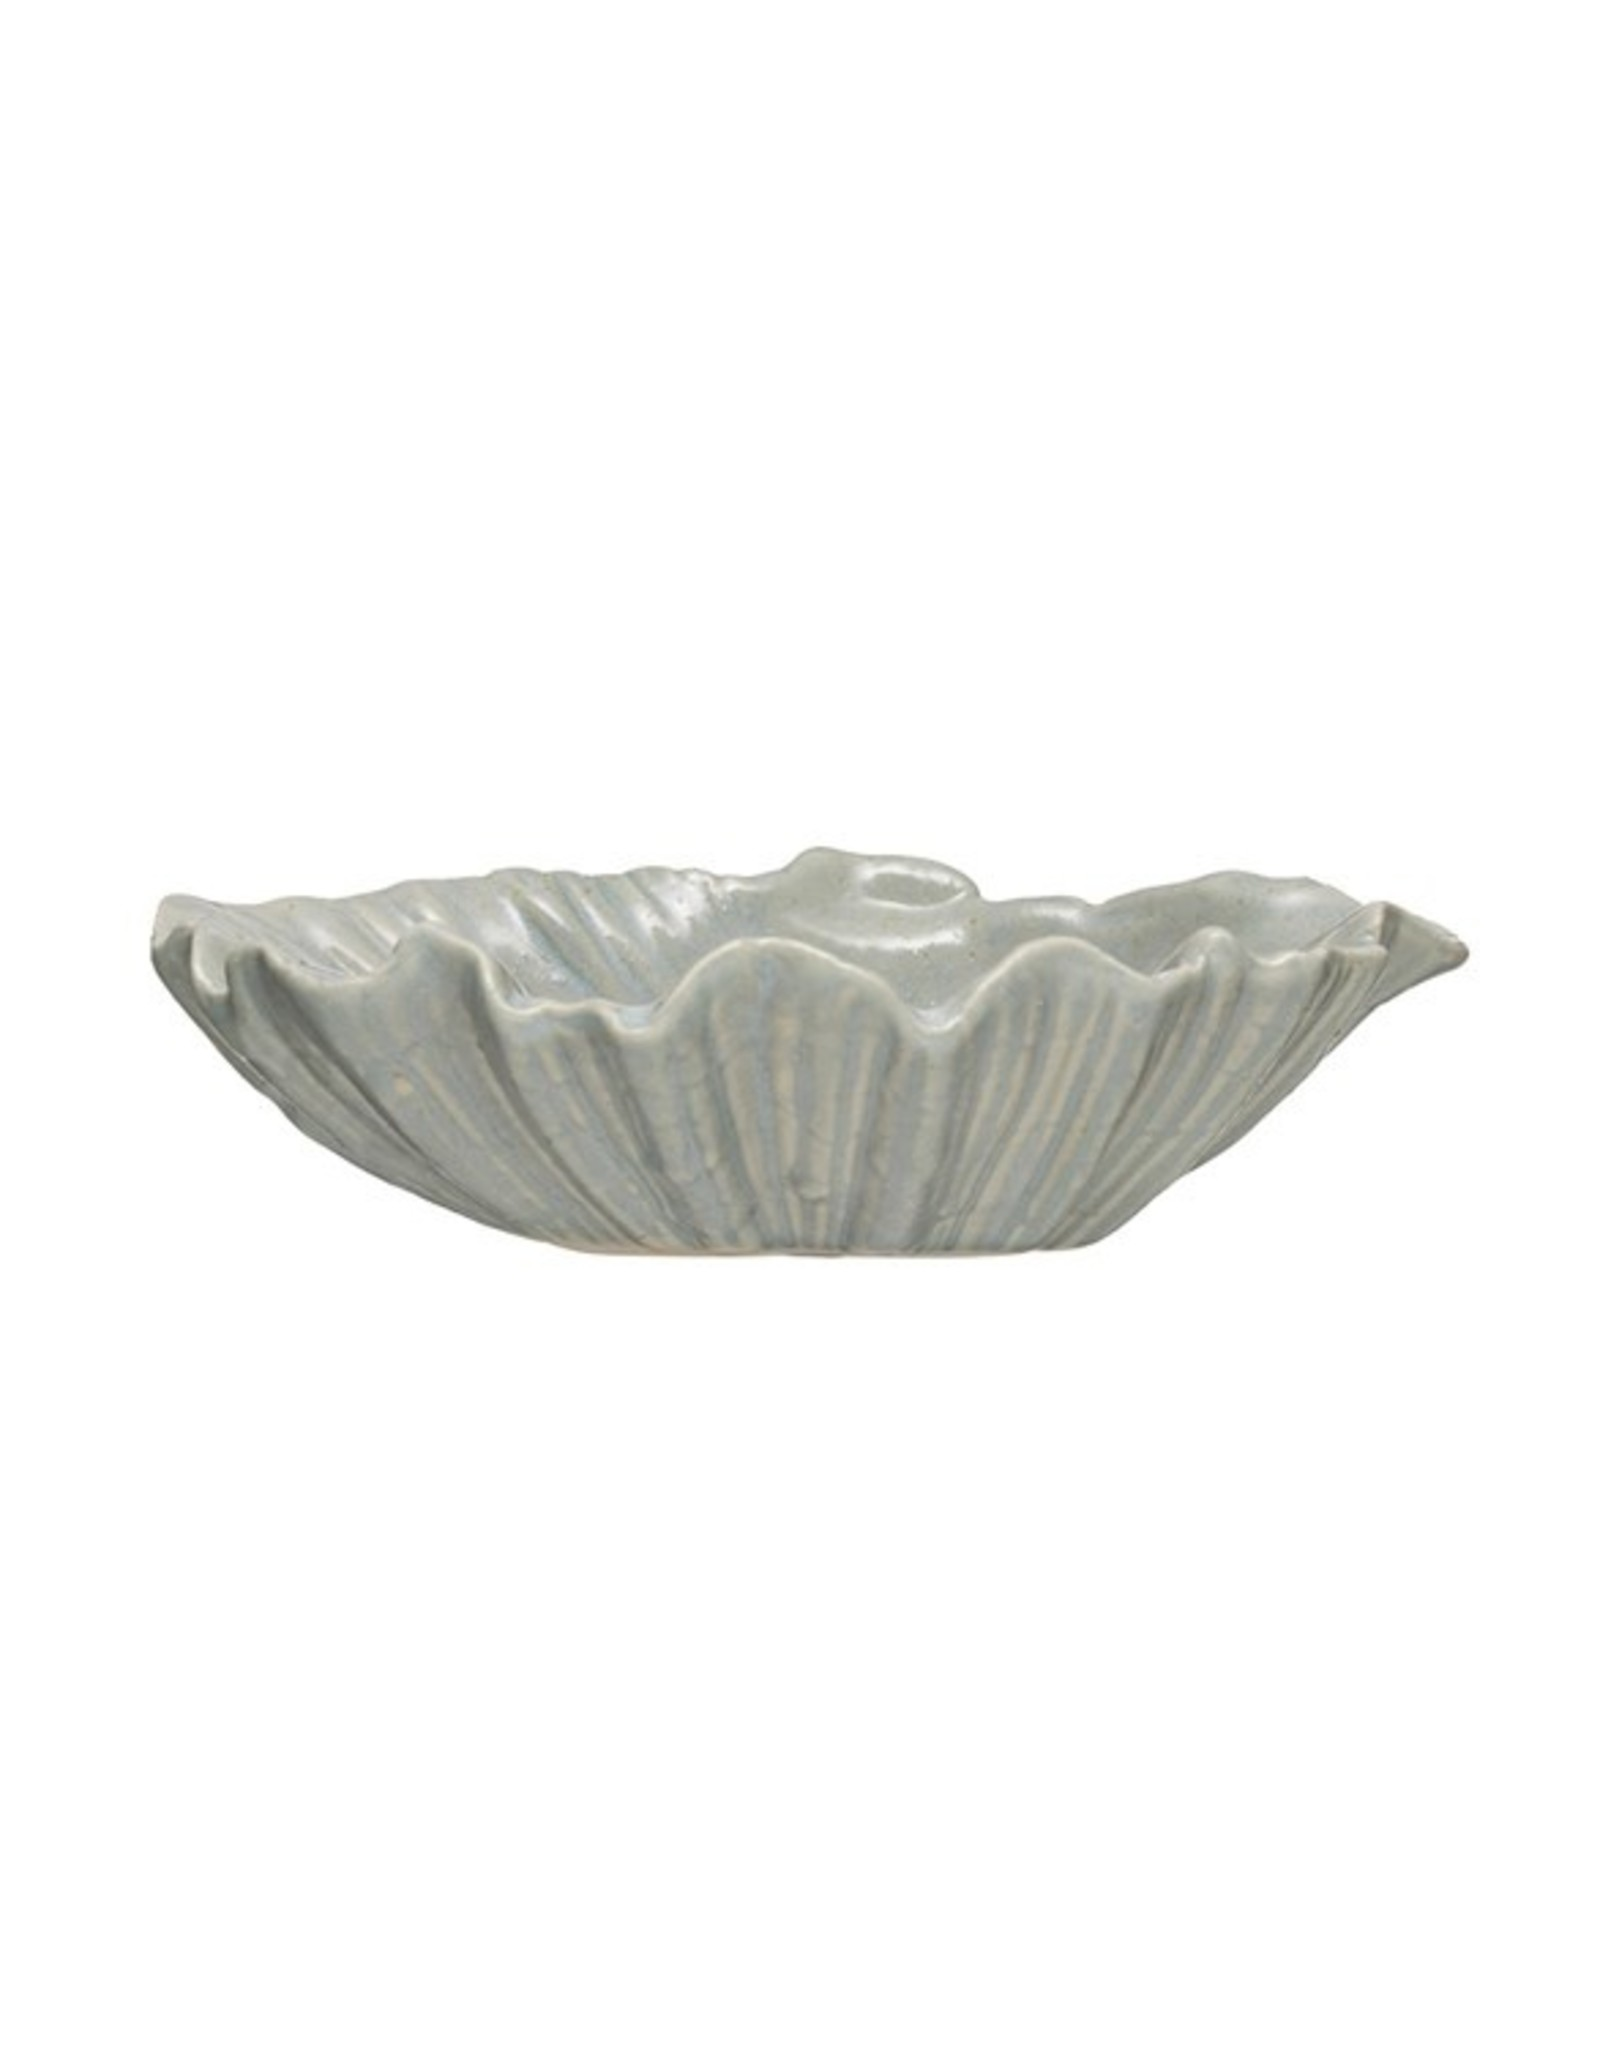 """8-1/2""""L x 7""""W x 2-1/2""""H Stoneware Shell Dish, Reactive Glaze, Blue (Each One Will Vary)"""